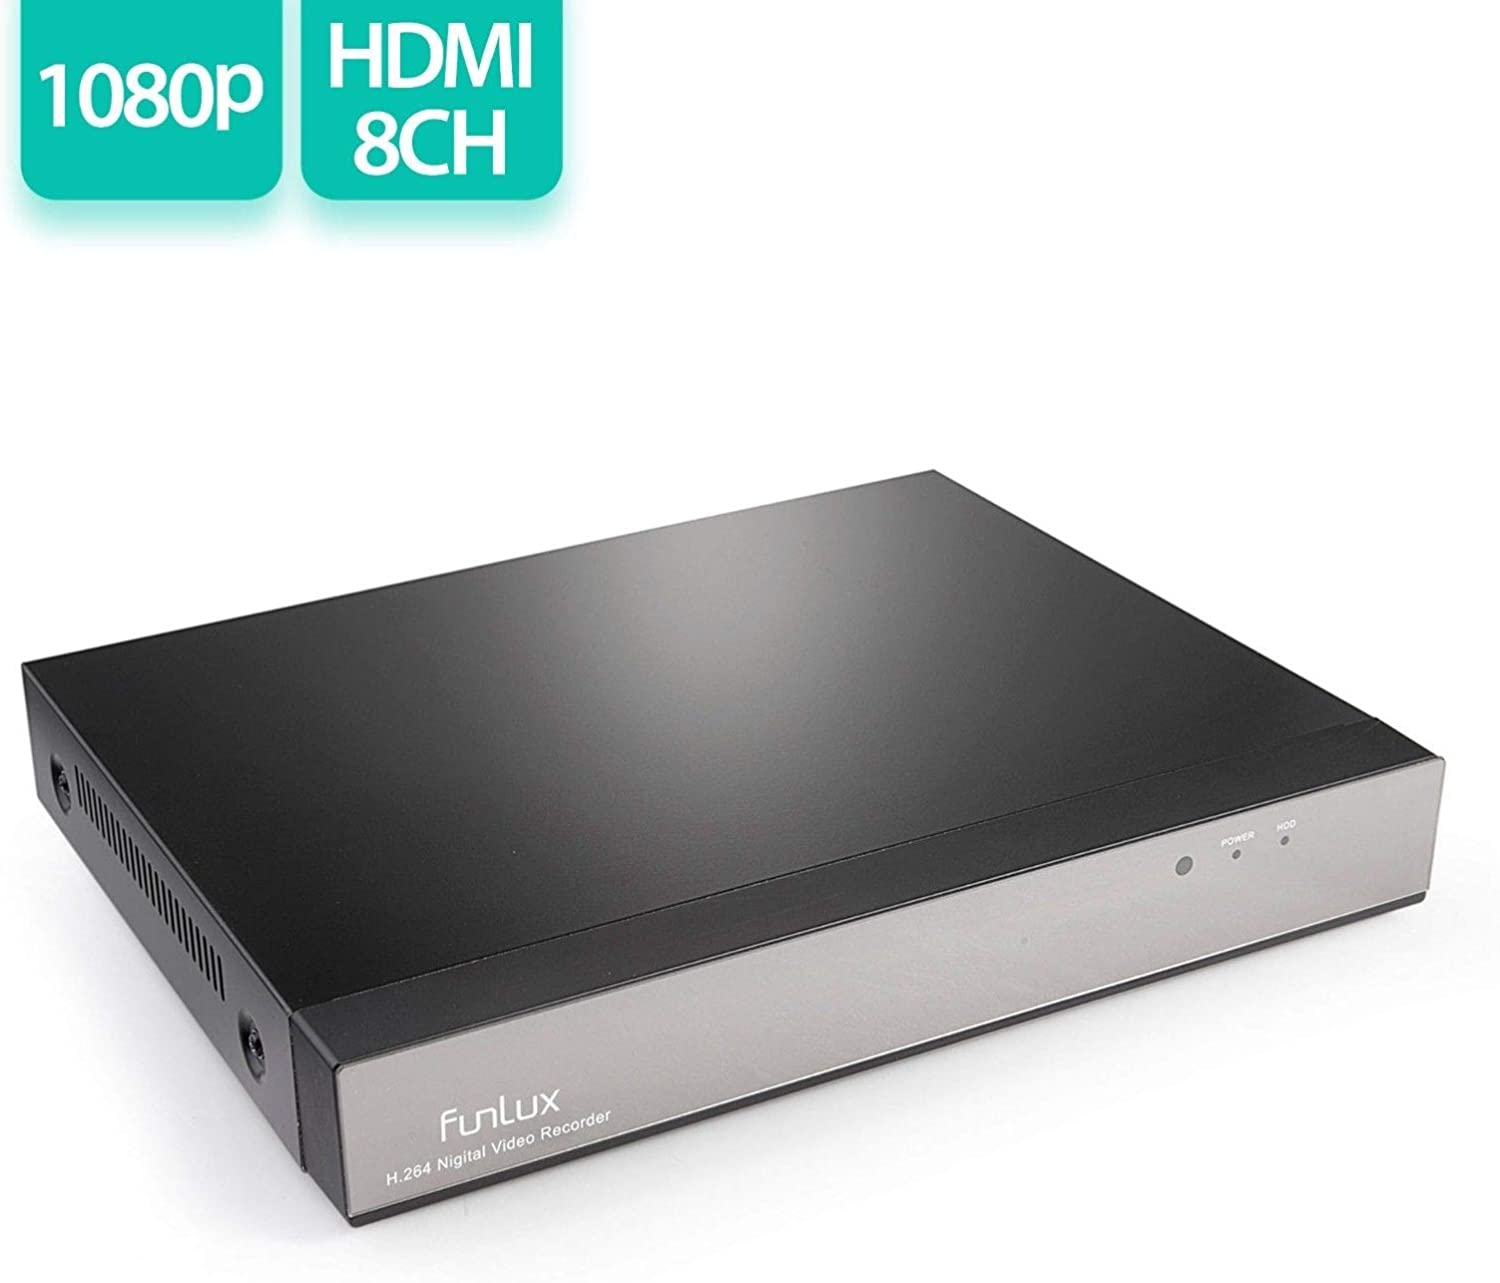 Funlux NS-S81A-S 8 Channel H.264 720p HD NVR No HDD